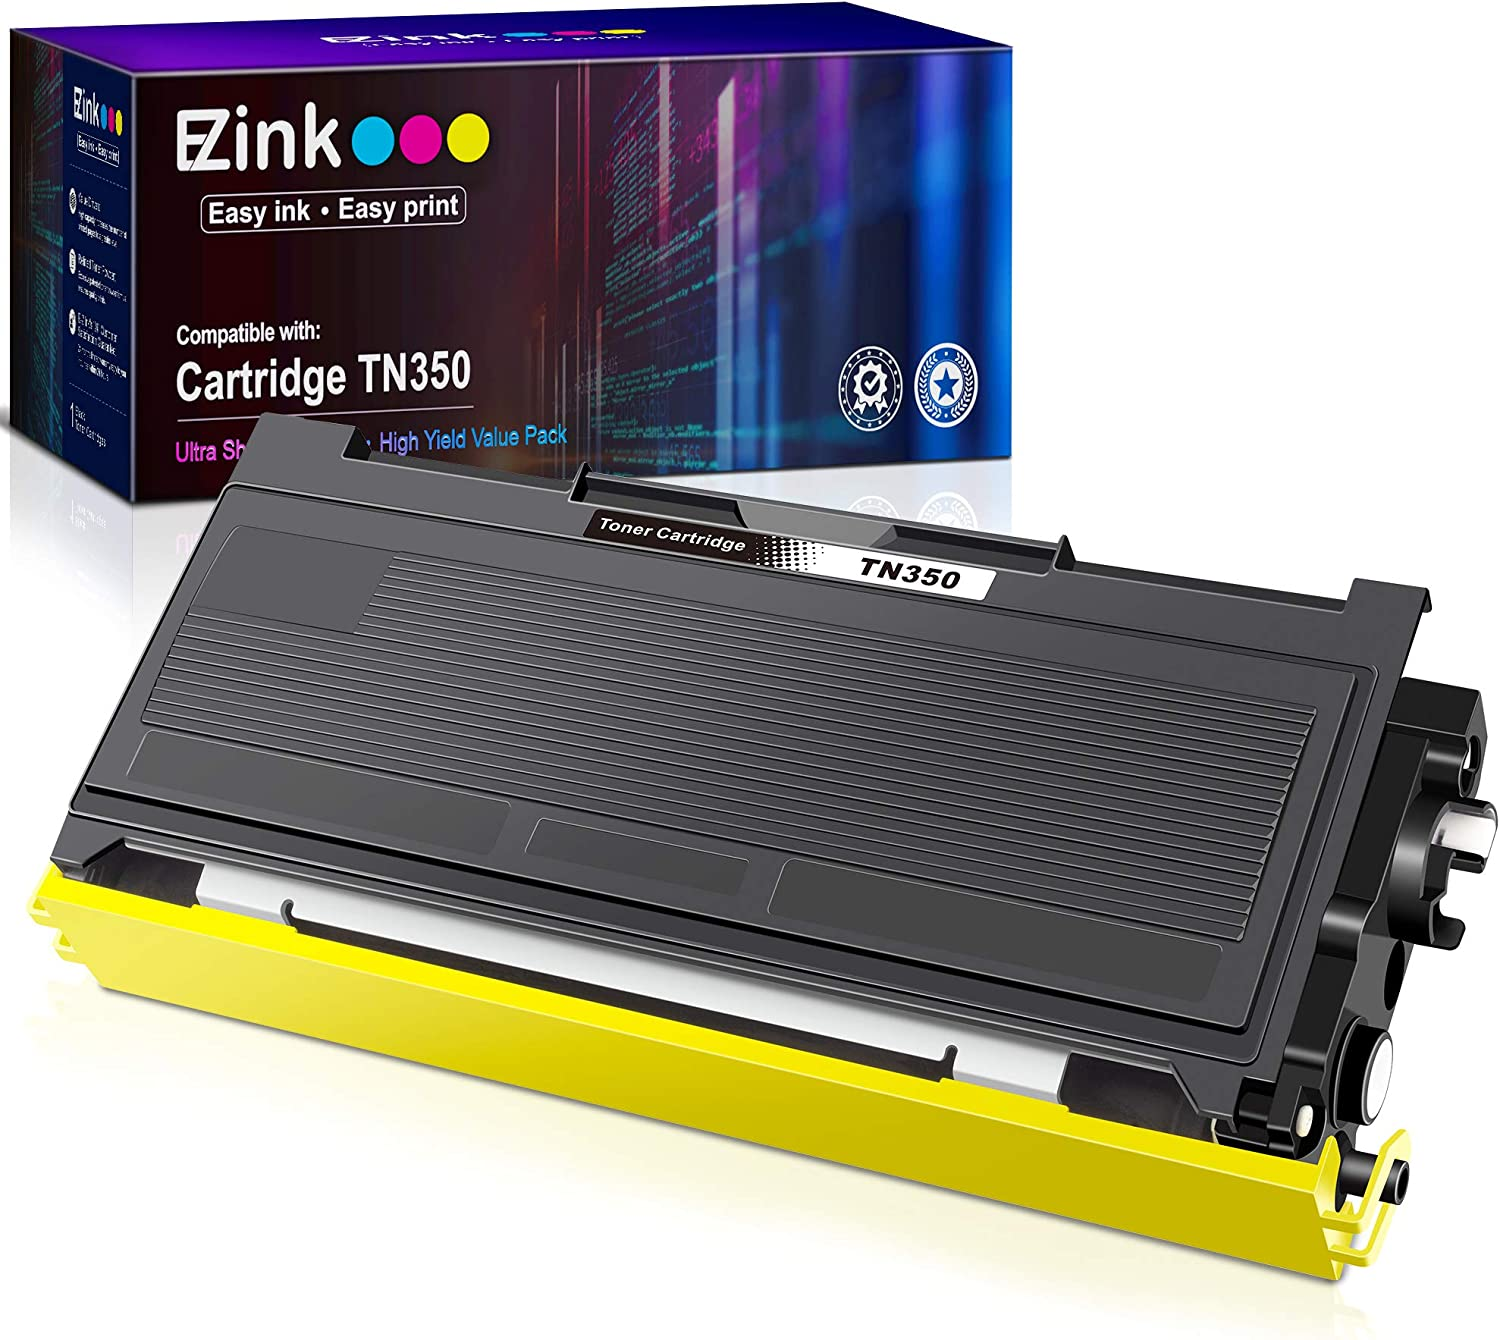 E-Z Ink (TM) Compatible Toner Cartridge Replacement for Brother TN350 TN-350 TN 350 to Use with Intellifax 2820 Intellifax 2920 HL-2070N HL-2040 DCP-7020 MFC-7820n (Black, 1Pack)